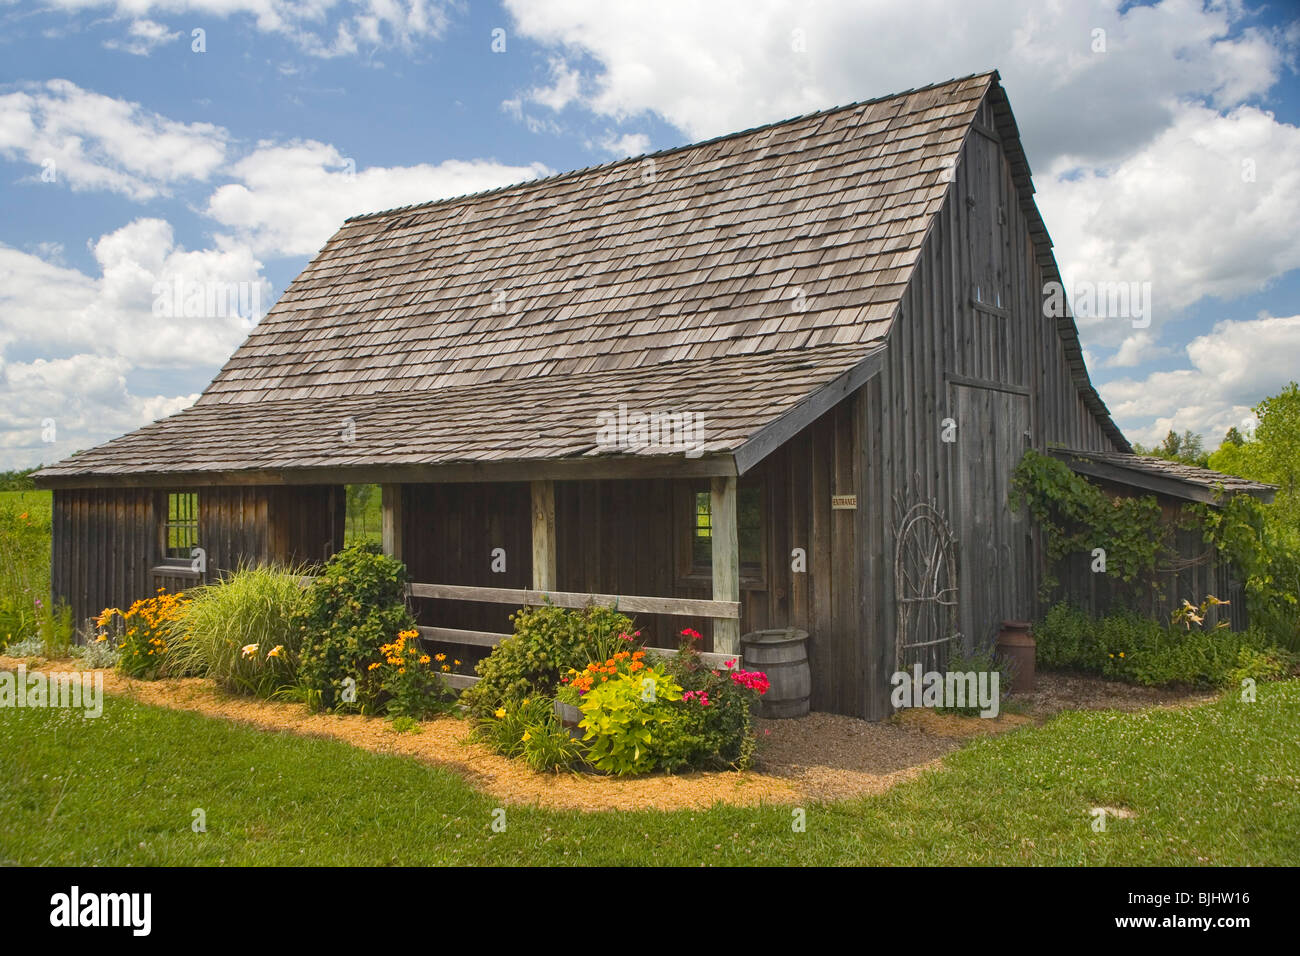 Walt Disney Barn 'Happy Place' - Stock Image